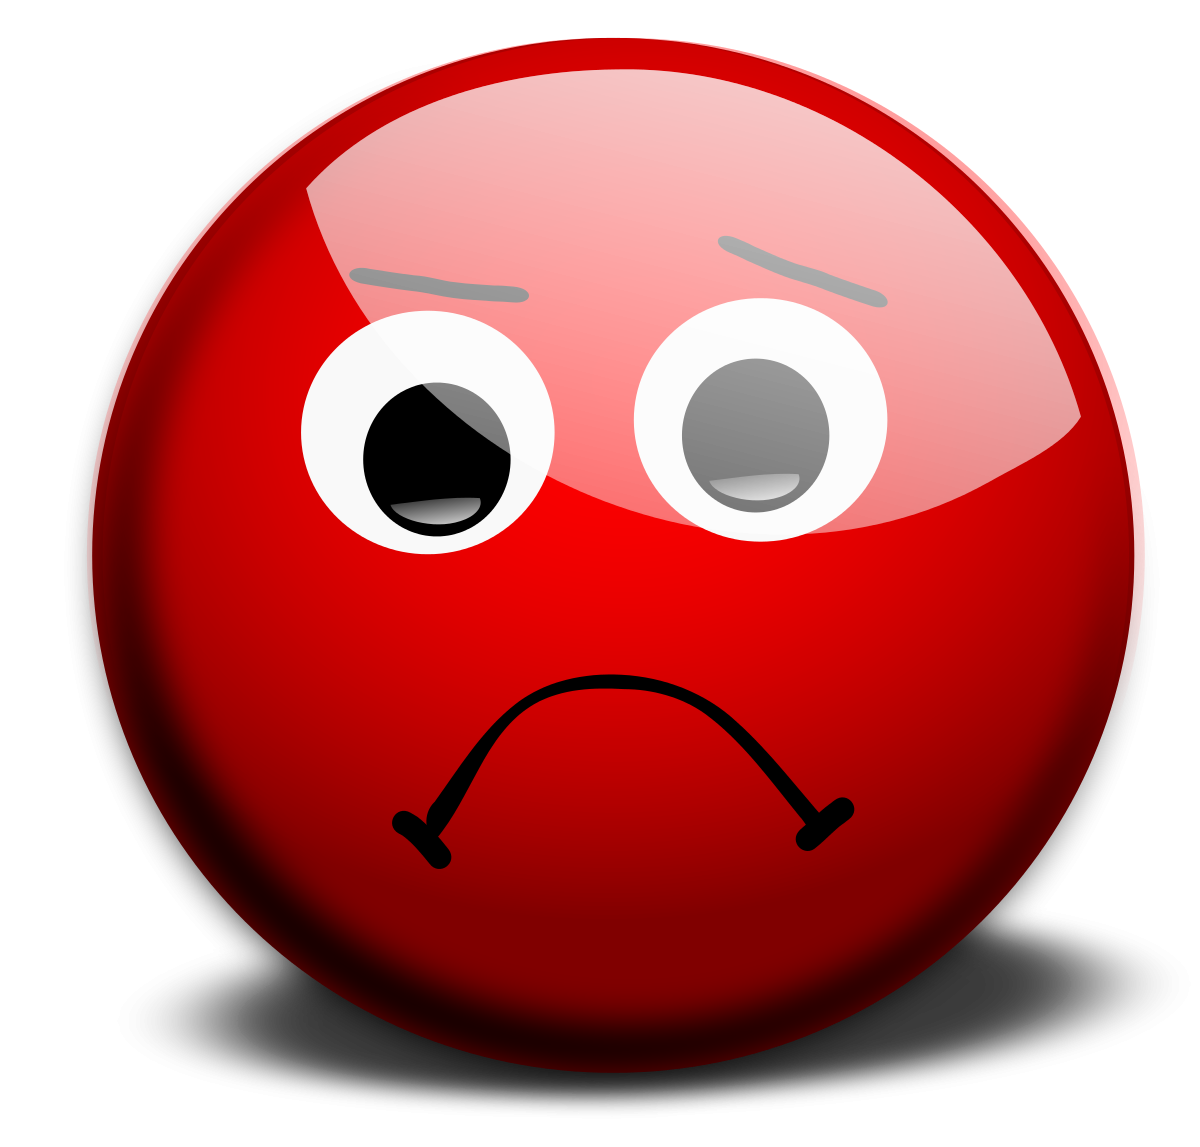 Clip art n free. Emotions clipart red sad face